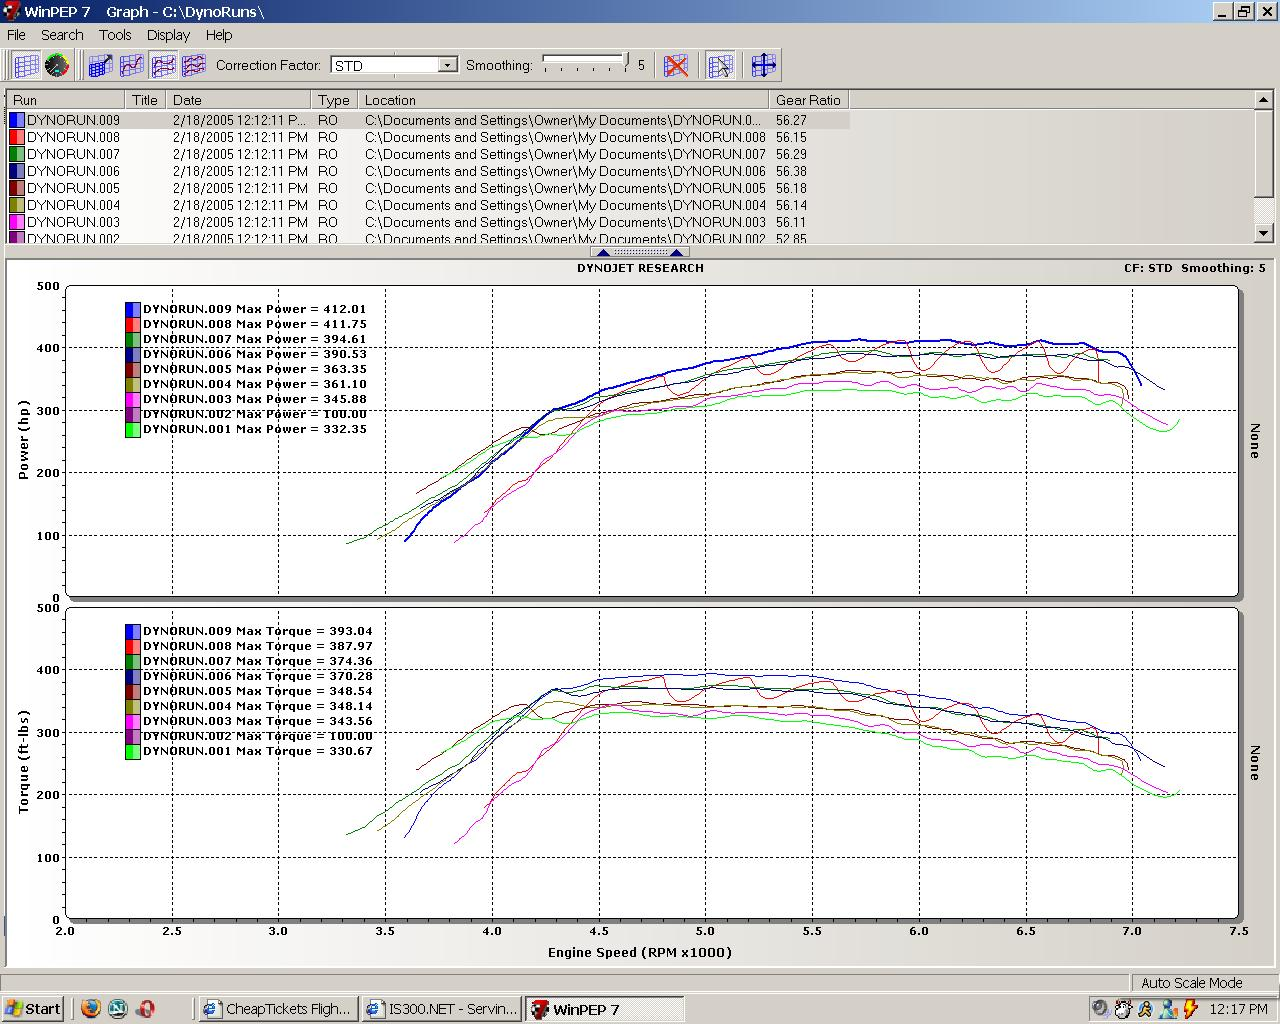 2001 Lexus IS300 Turbo Dyno Results Graph